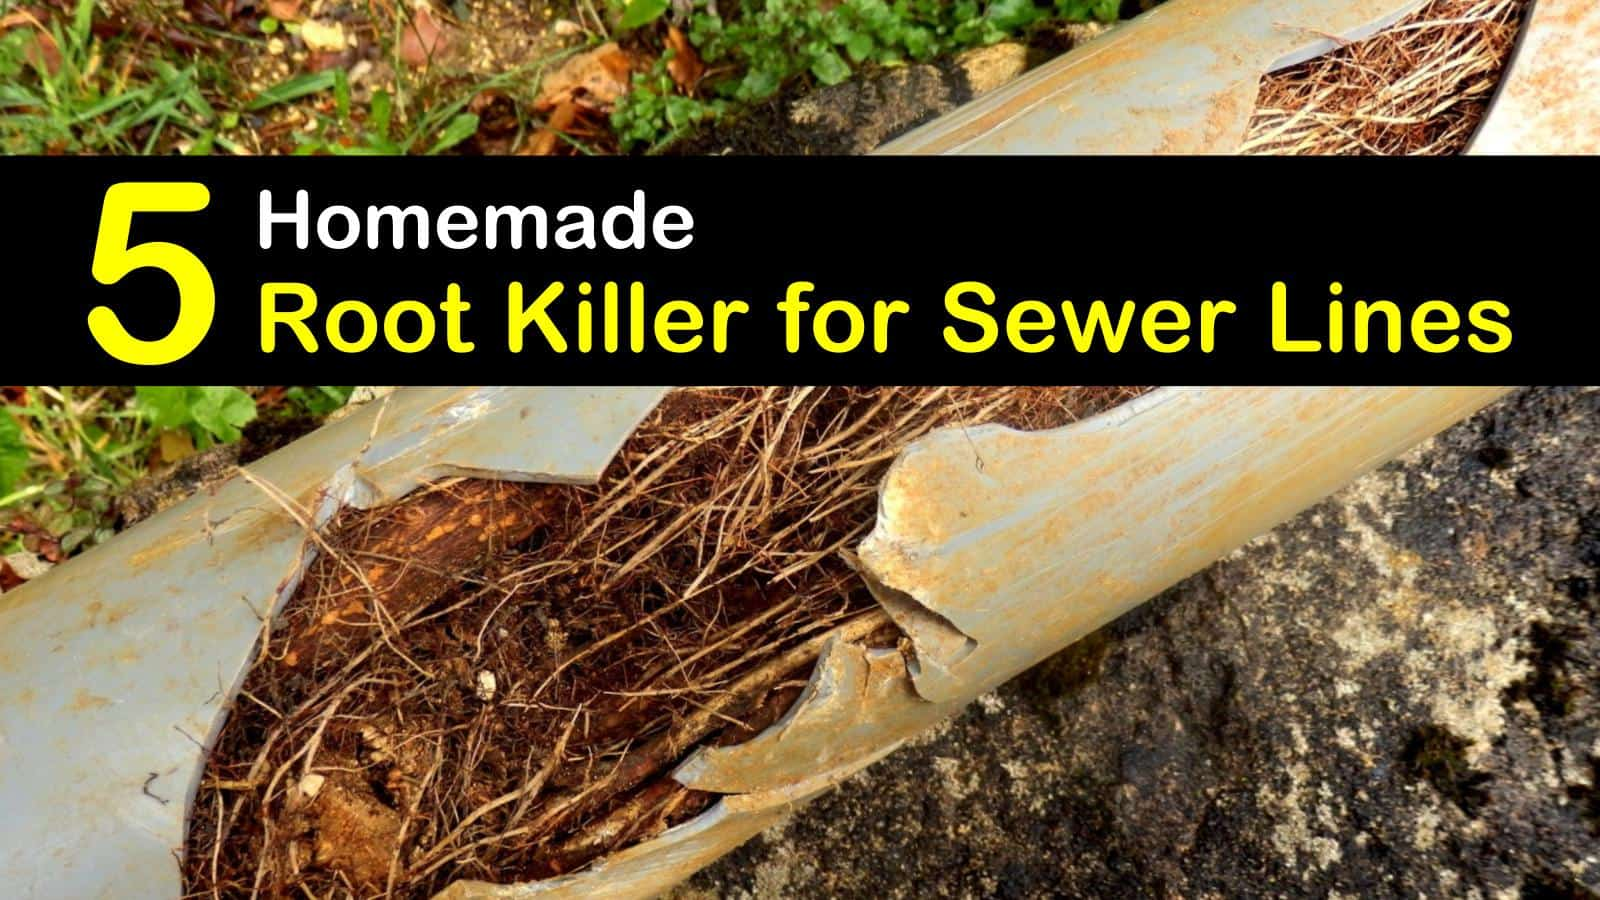 homemade root killer for sewer lines titleimg1